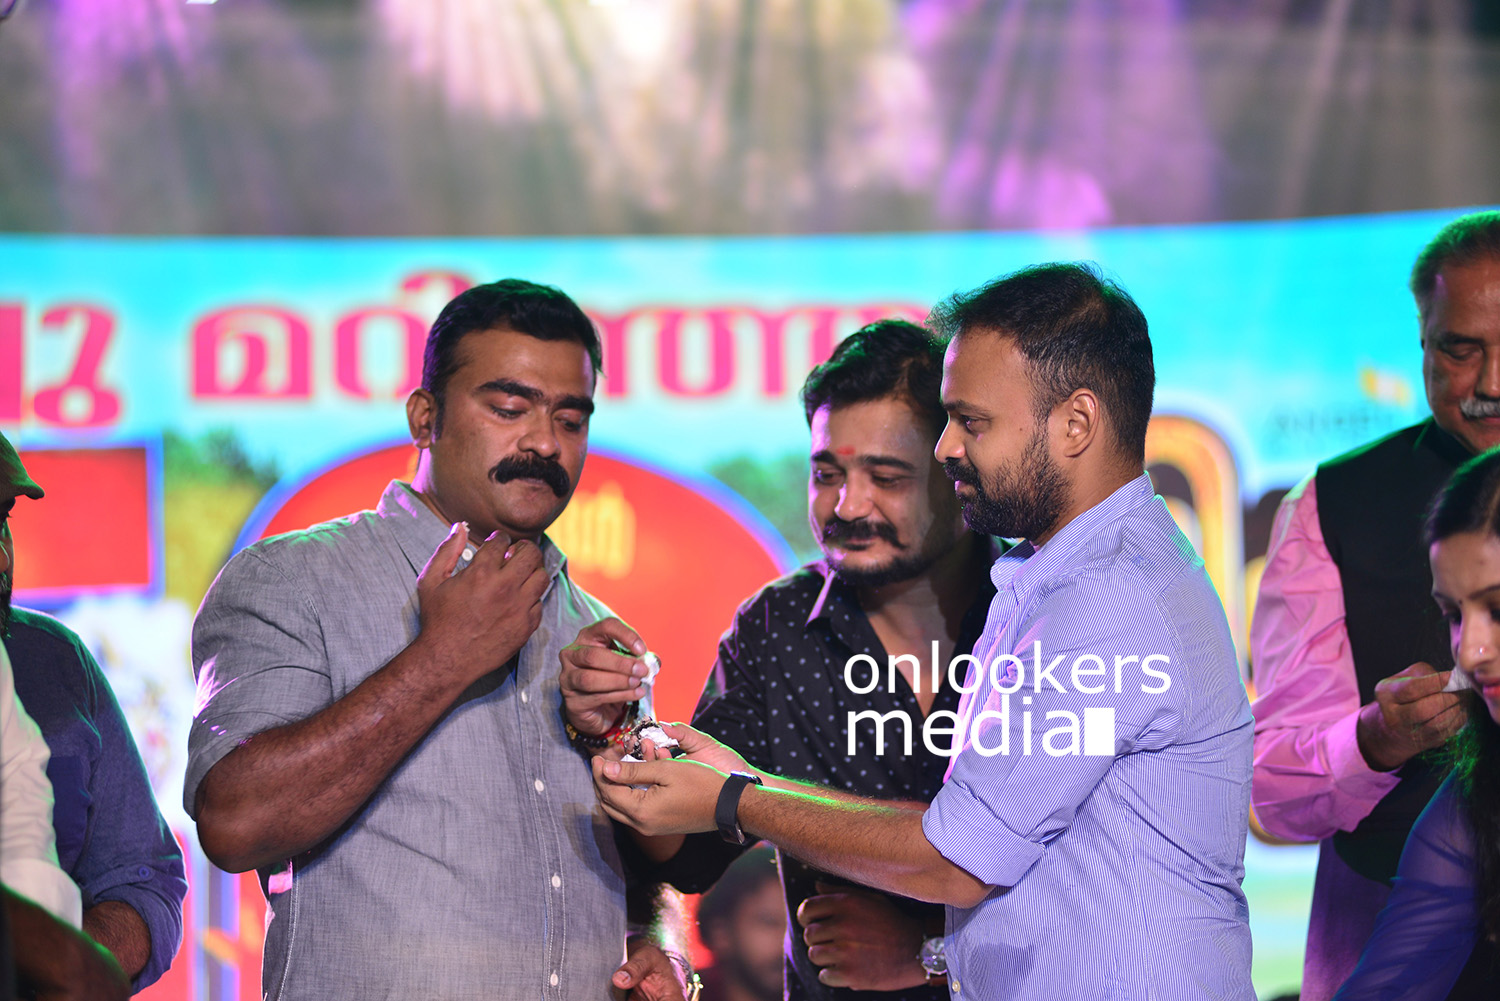 http://onlookersmedia.in/wp-content/uploads/2018/03/Shikkari-Shambhu-malayalam-movie-50-days-celebration-stills-images-4.jpg